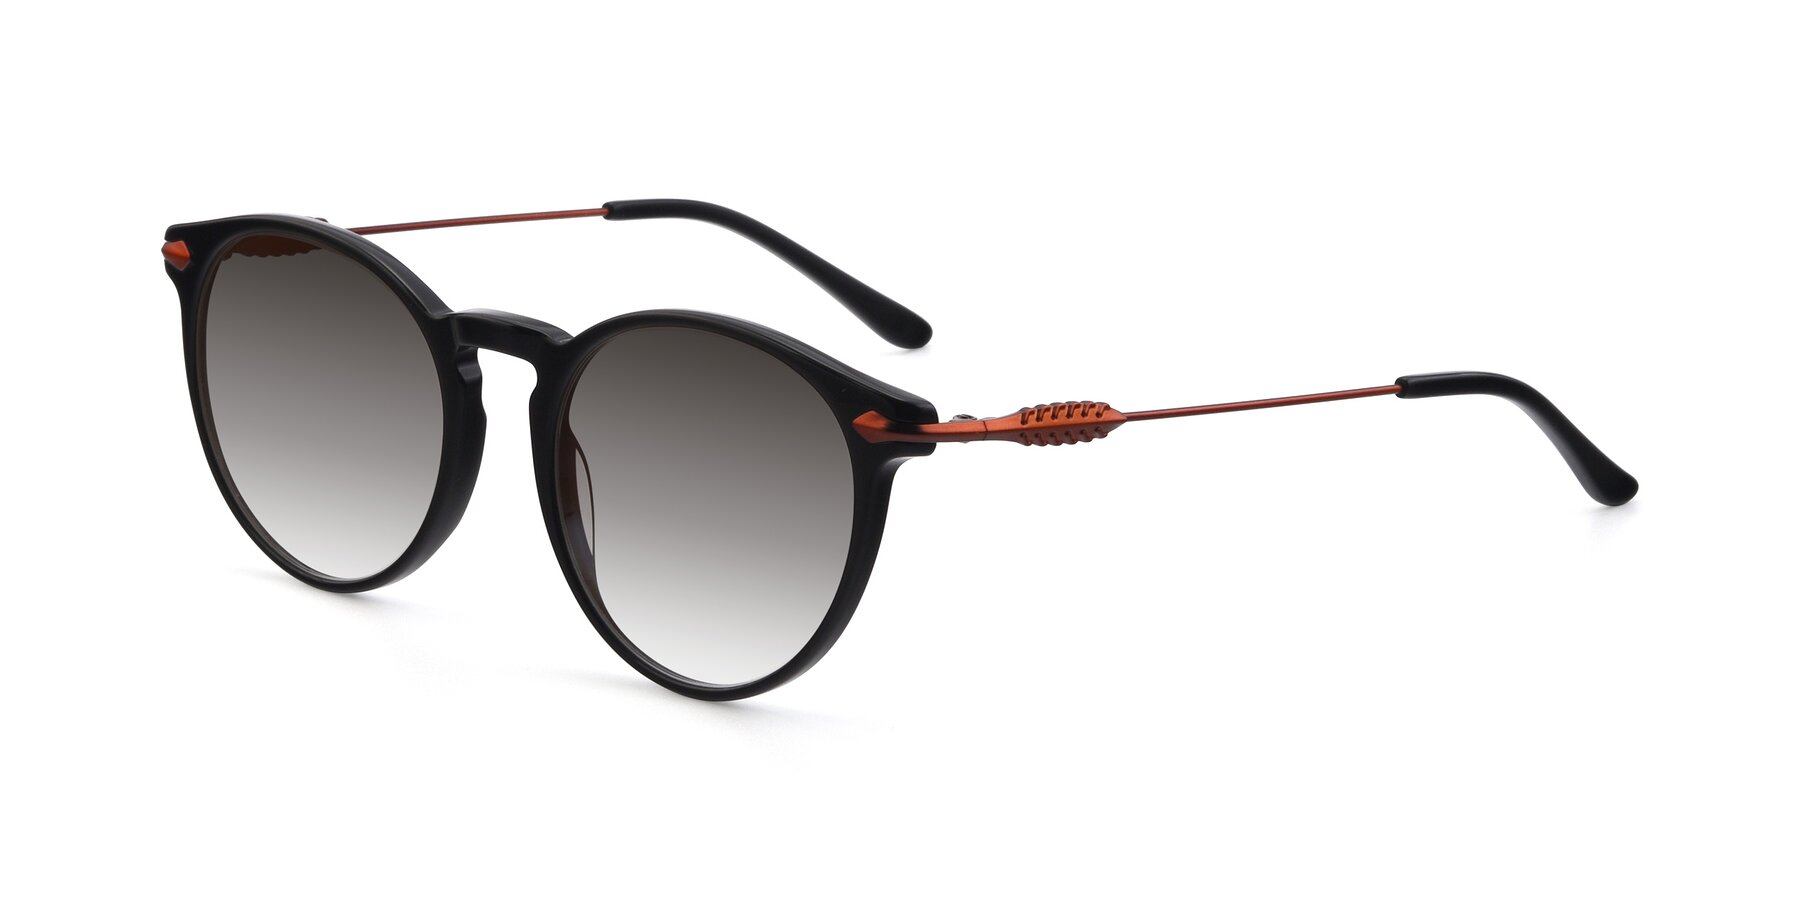 Angle of 17660 in Black with Gray Gradient Lenses